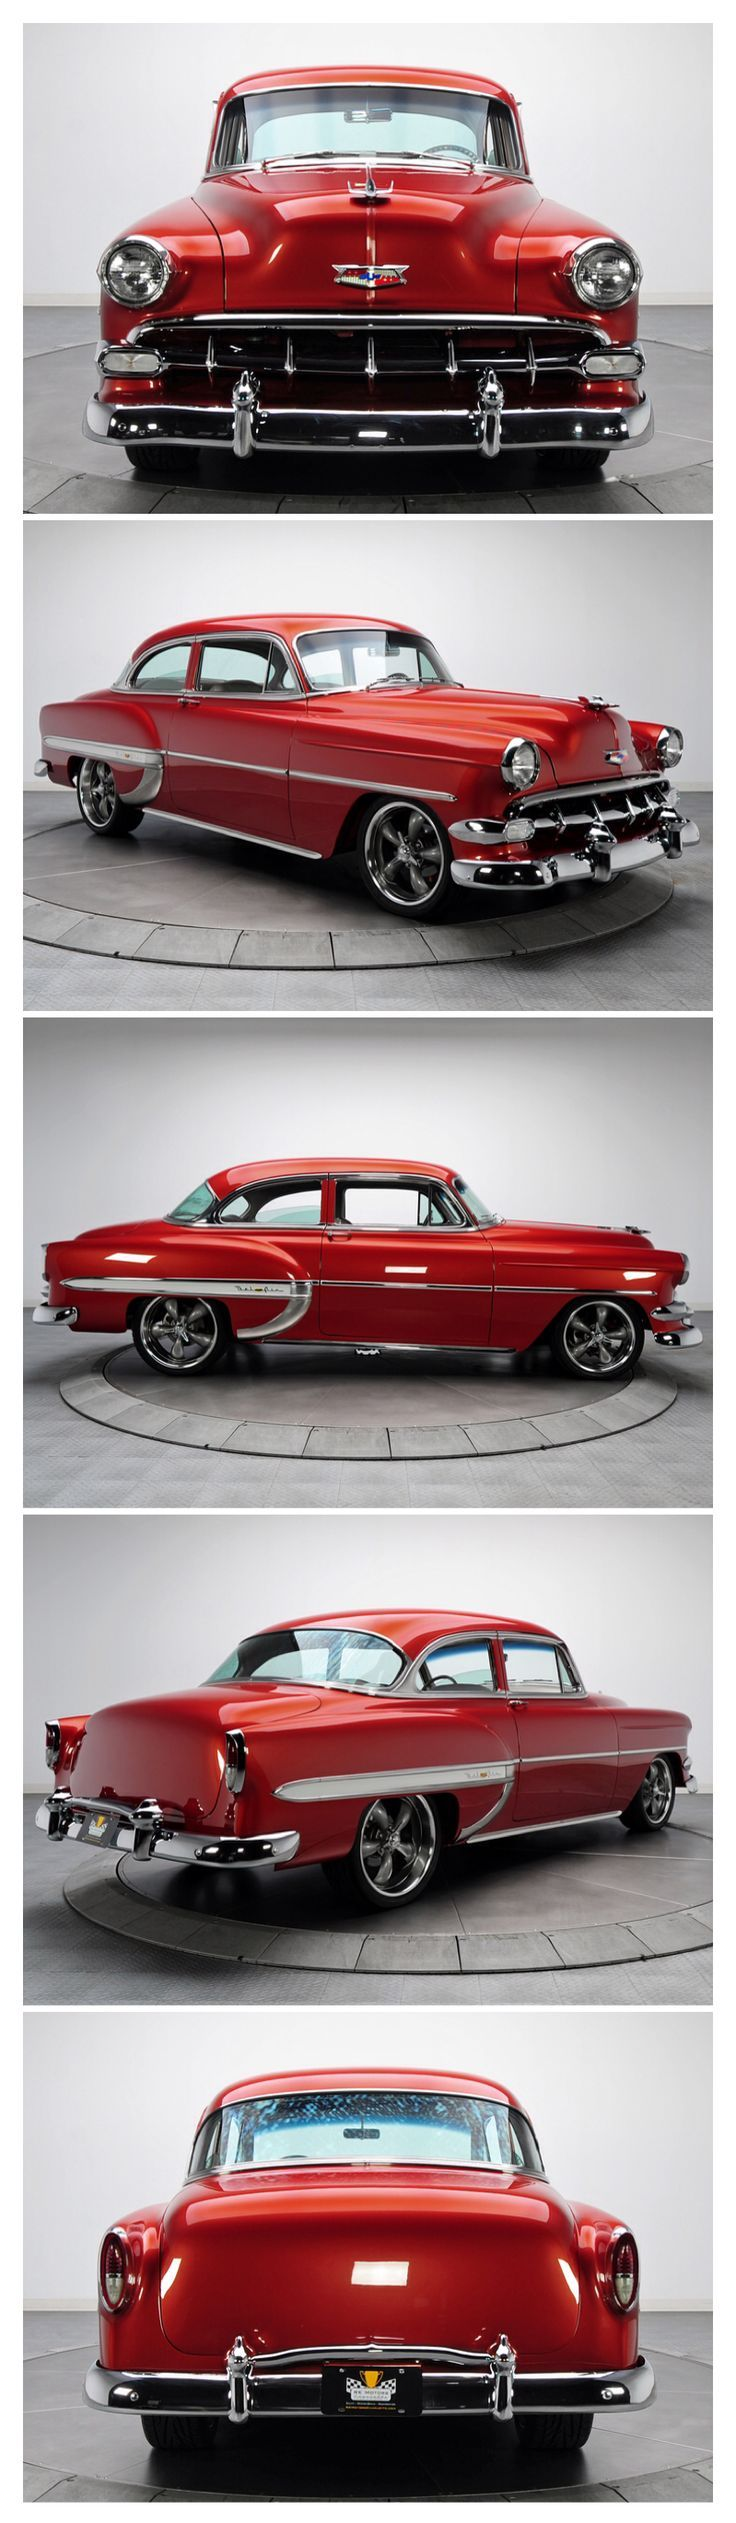 "1954 Chevrolet Bel Air-Not quite the ""Tri-Five"", but still a beautiful car and photographs."